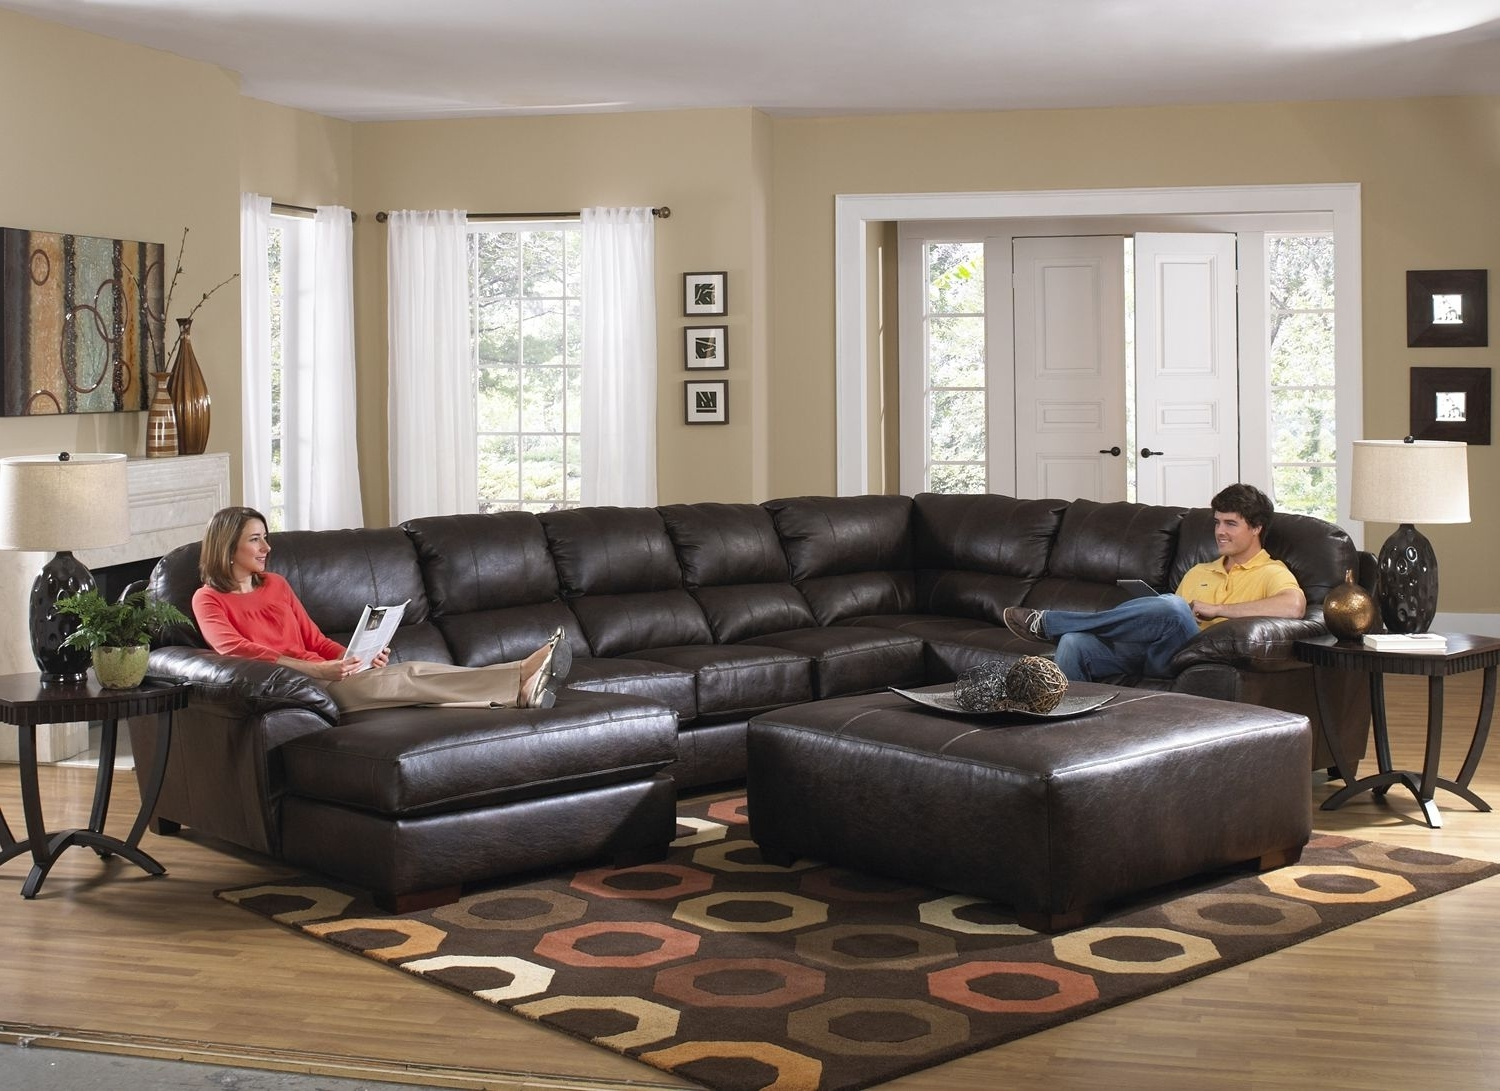 Lawson Godiva U Shape Sectional Sofa W/ Chaise In Chocolate Bonded With Regard To Famous Sectionals With Oversized Ottoman (View 6 of 15)